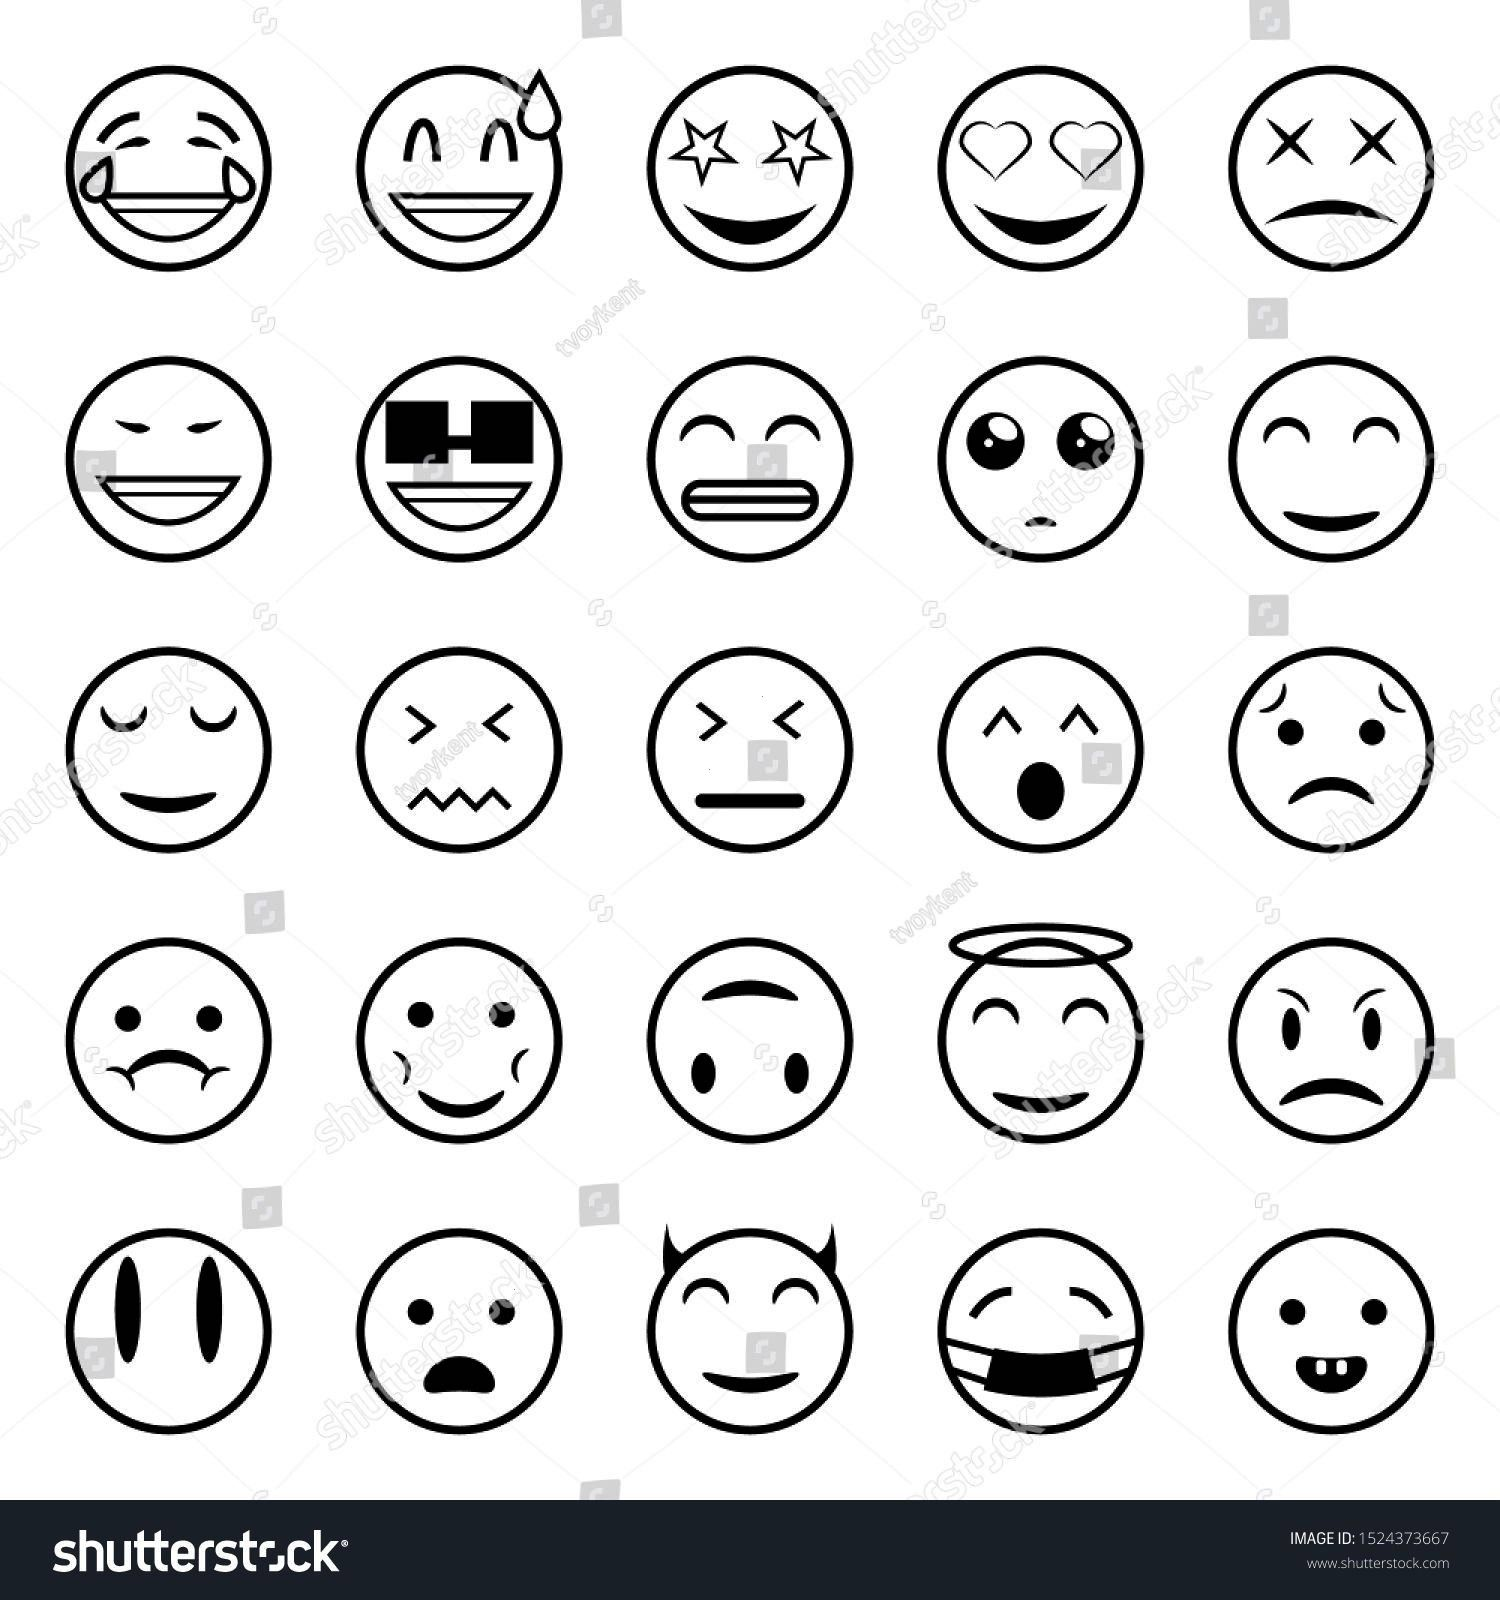 Emoticonfacessmilefunny Emoticonfac Expression Effective Emoticons Presented Beautiful Pictures Emoticon Quality Outline Picture Things Smiley Fa 2020